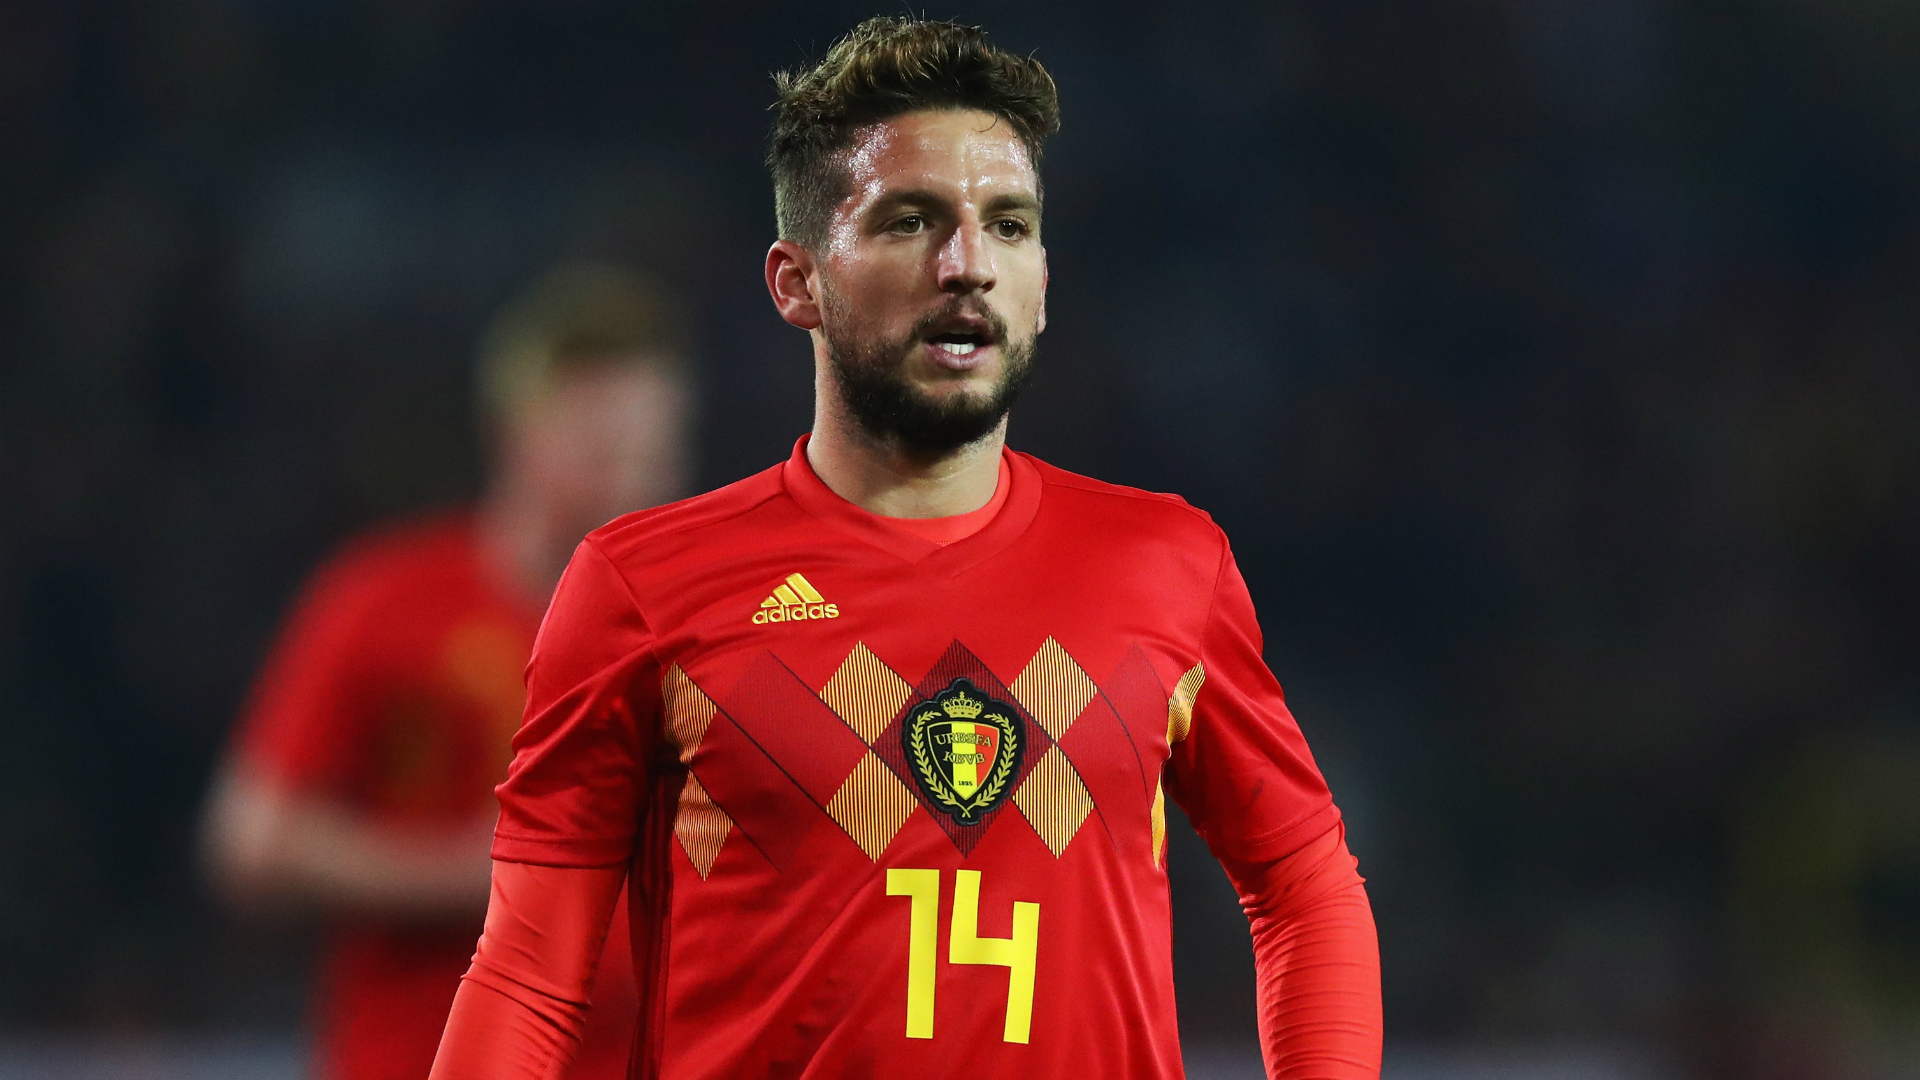 Belgium cruises to victory over Panama